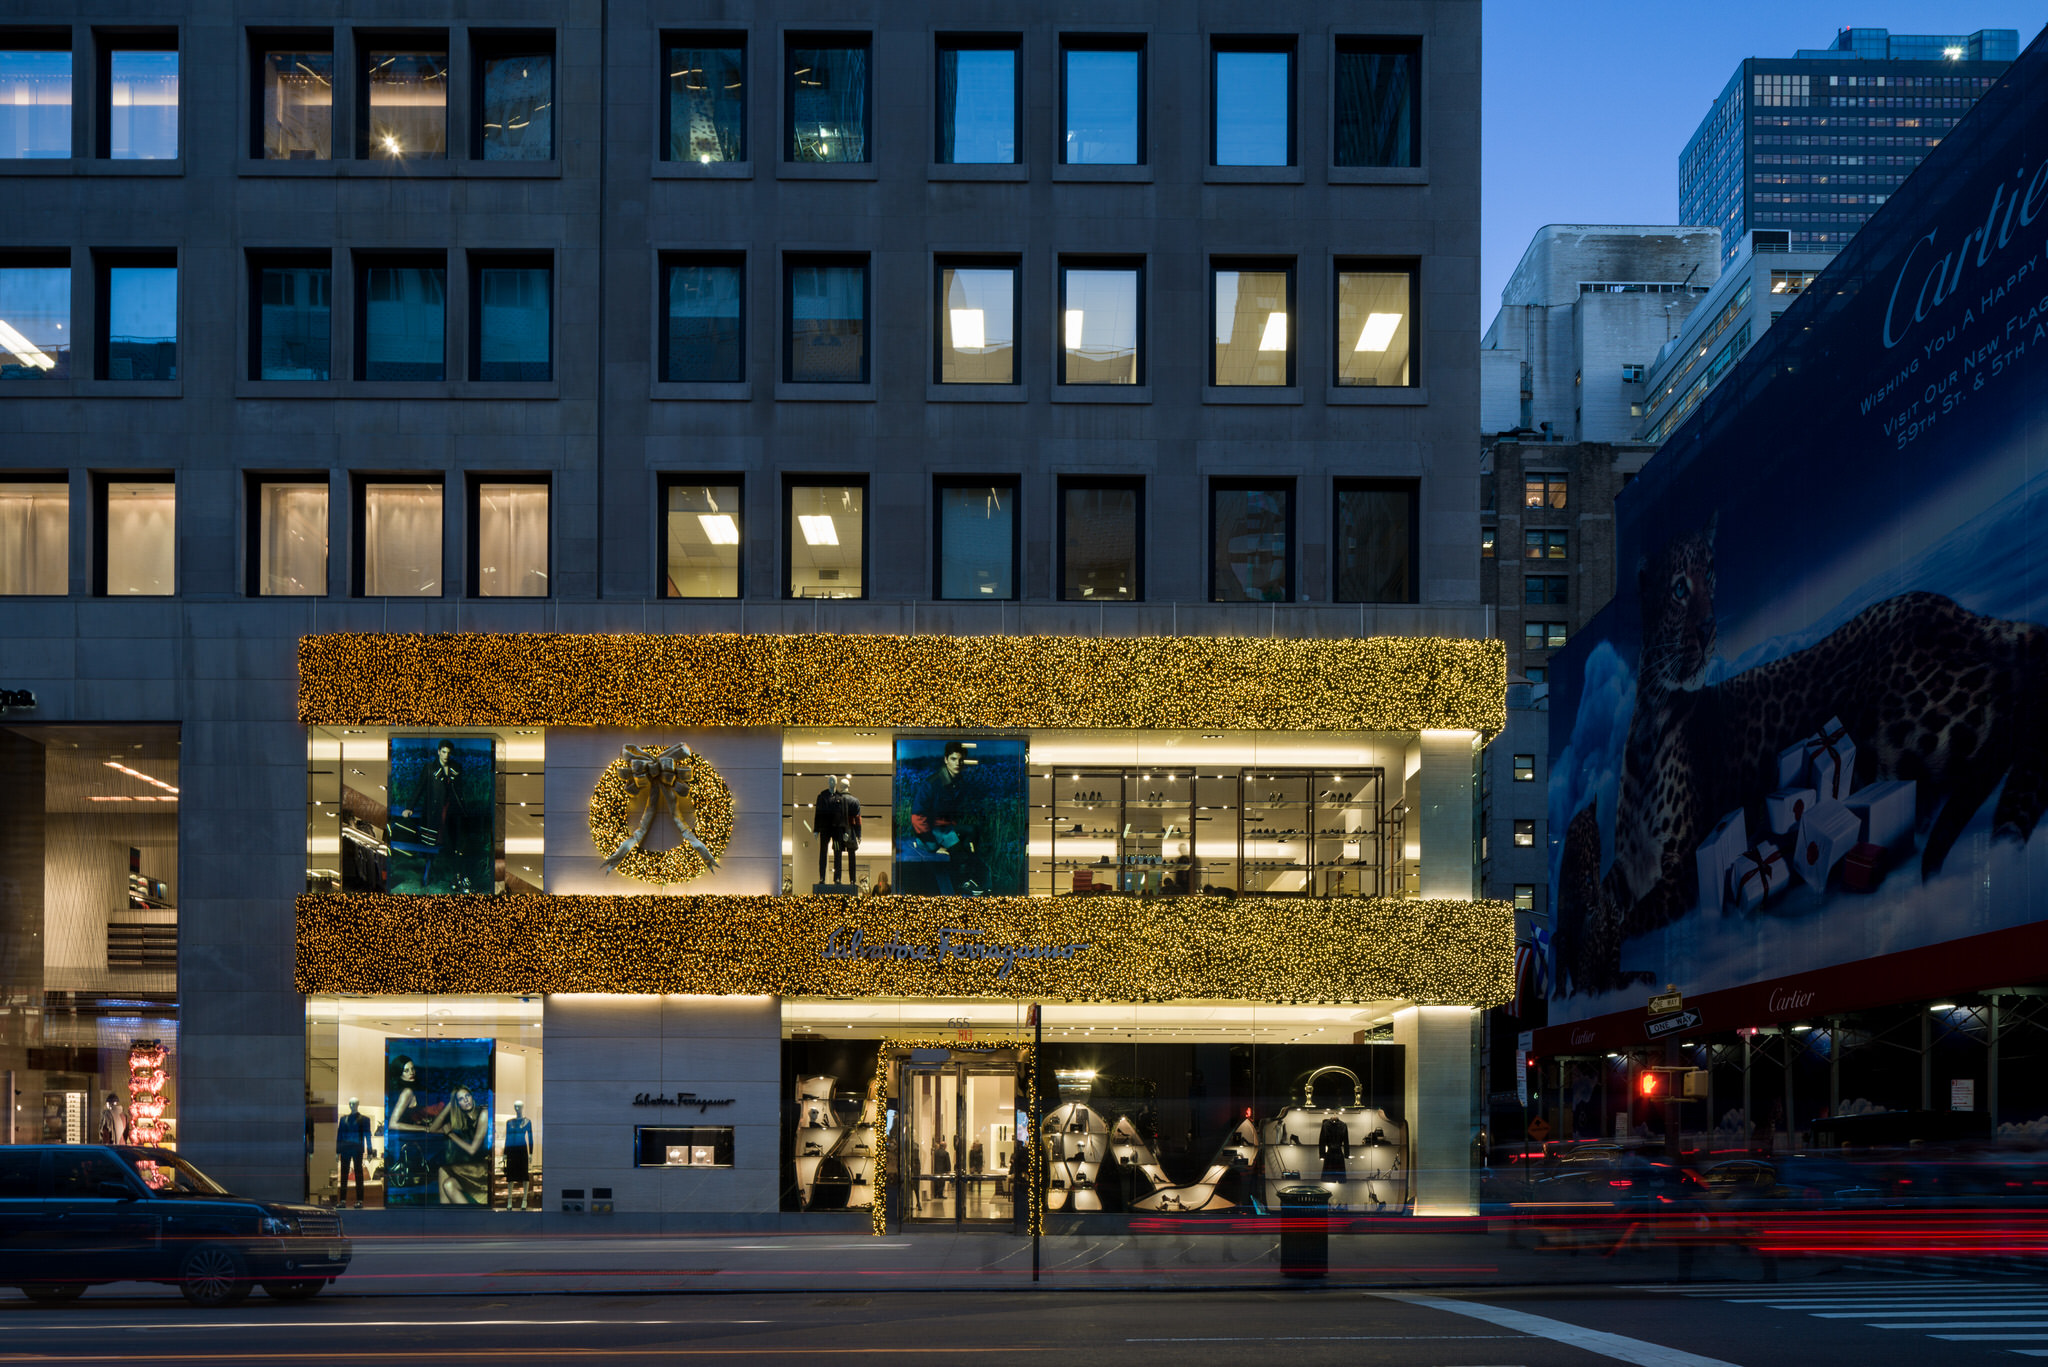 SalvatoreFerragamo_NYC-2014_00737R-1